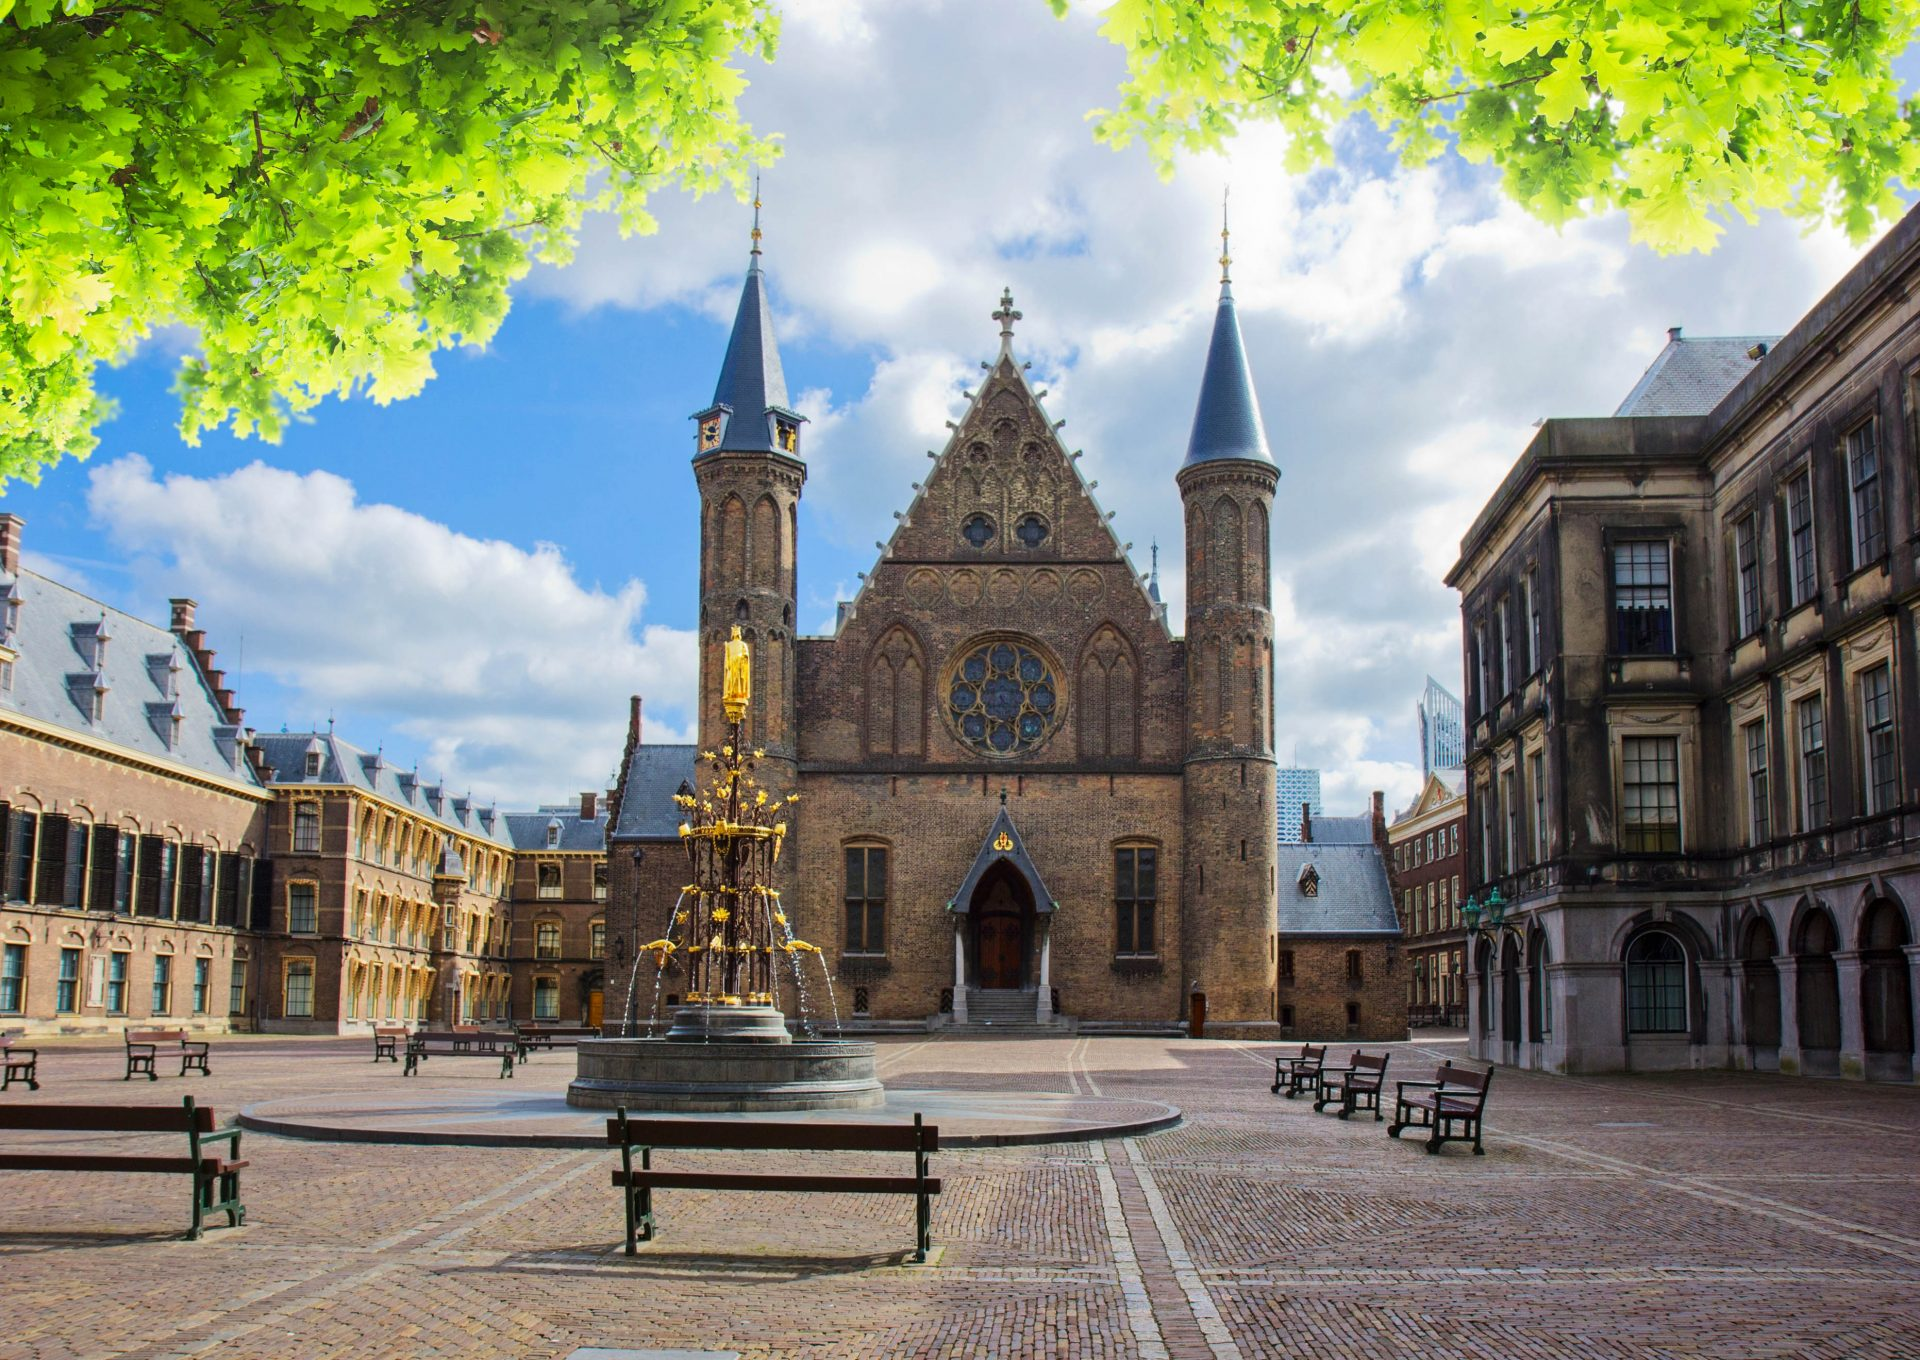 https://www.urlaubsguru.de/wp-content/uploads/2016/06/riderzaal-of-binnenhof-dutch-parliamentat-summer-day-the-hague-holland-shutterstock_286111961-2-e1532614997105.jpg